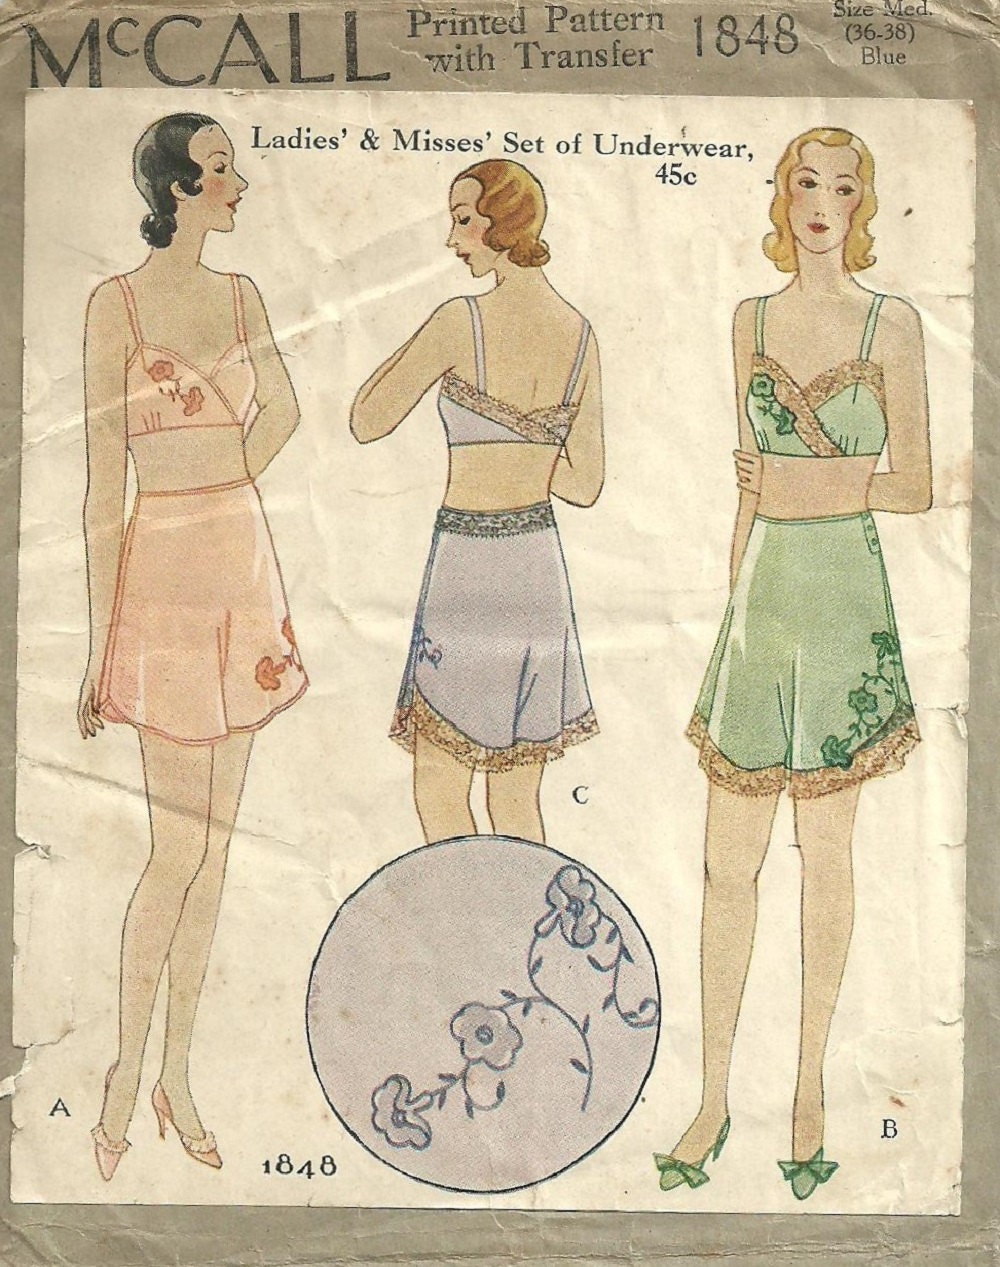 McCall 1848 / Vintage 30s Sewing Pattern / Bra Panties Shorts